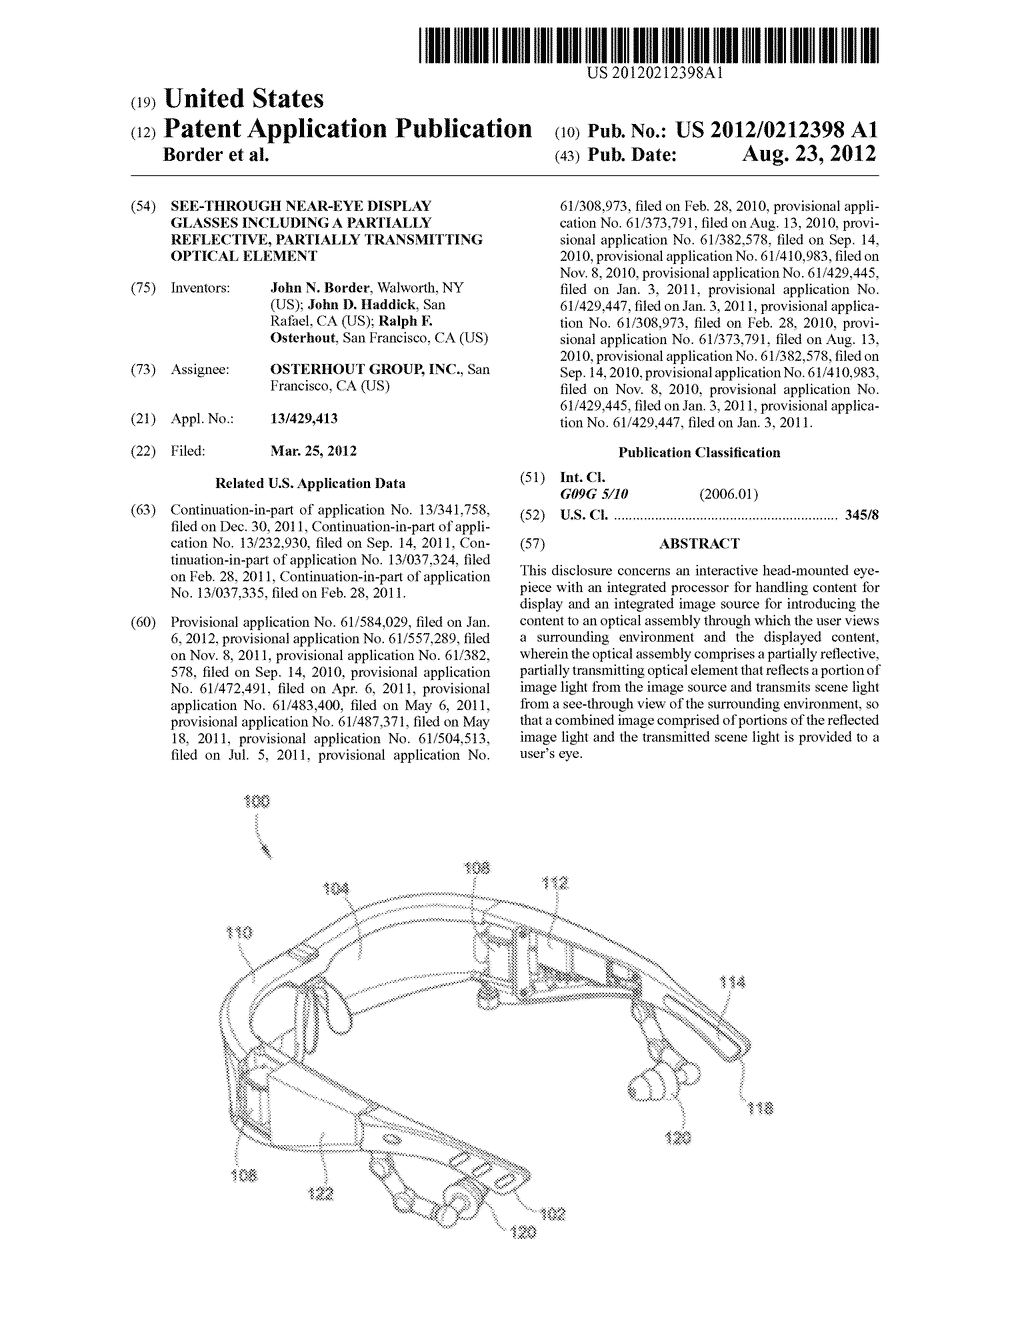 SEE-THROUGH NEAR-EYE DISPLAY GLASSES INCLUDING A PARTIALLY REFLECTIVE,     PARTIALLY TRANSMITTING OPTICAL ELEMENT - diagram, schematic, and image 01